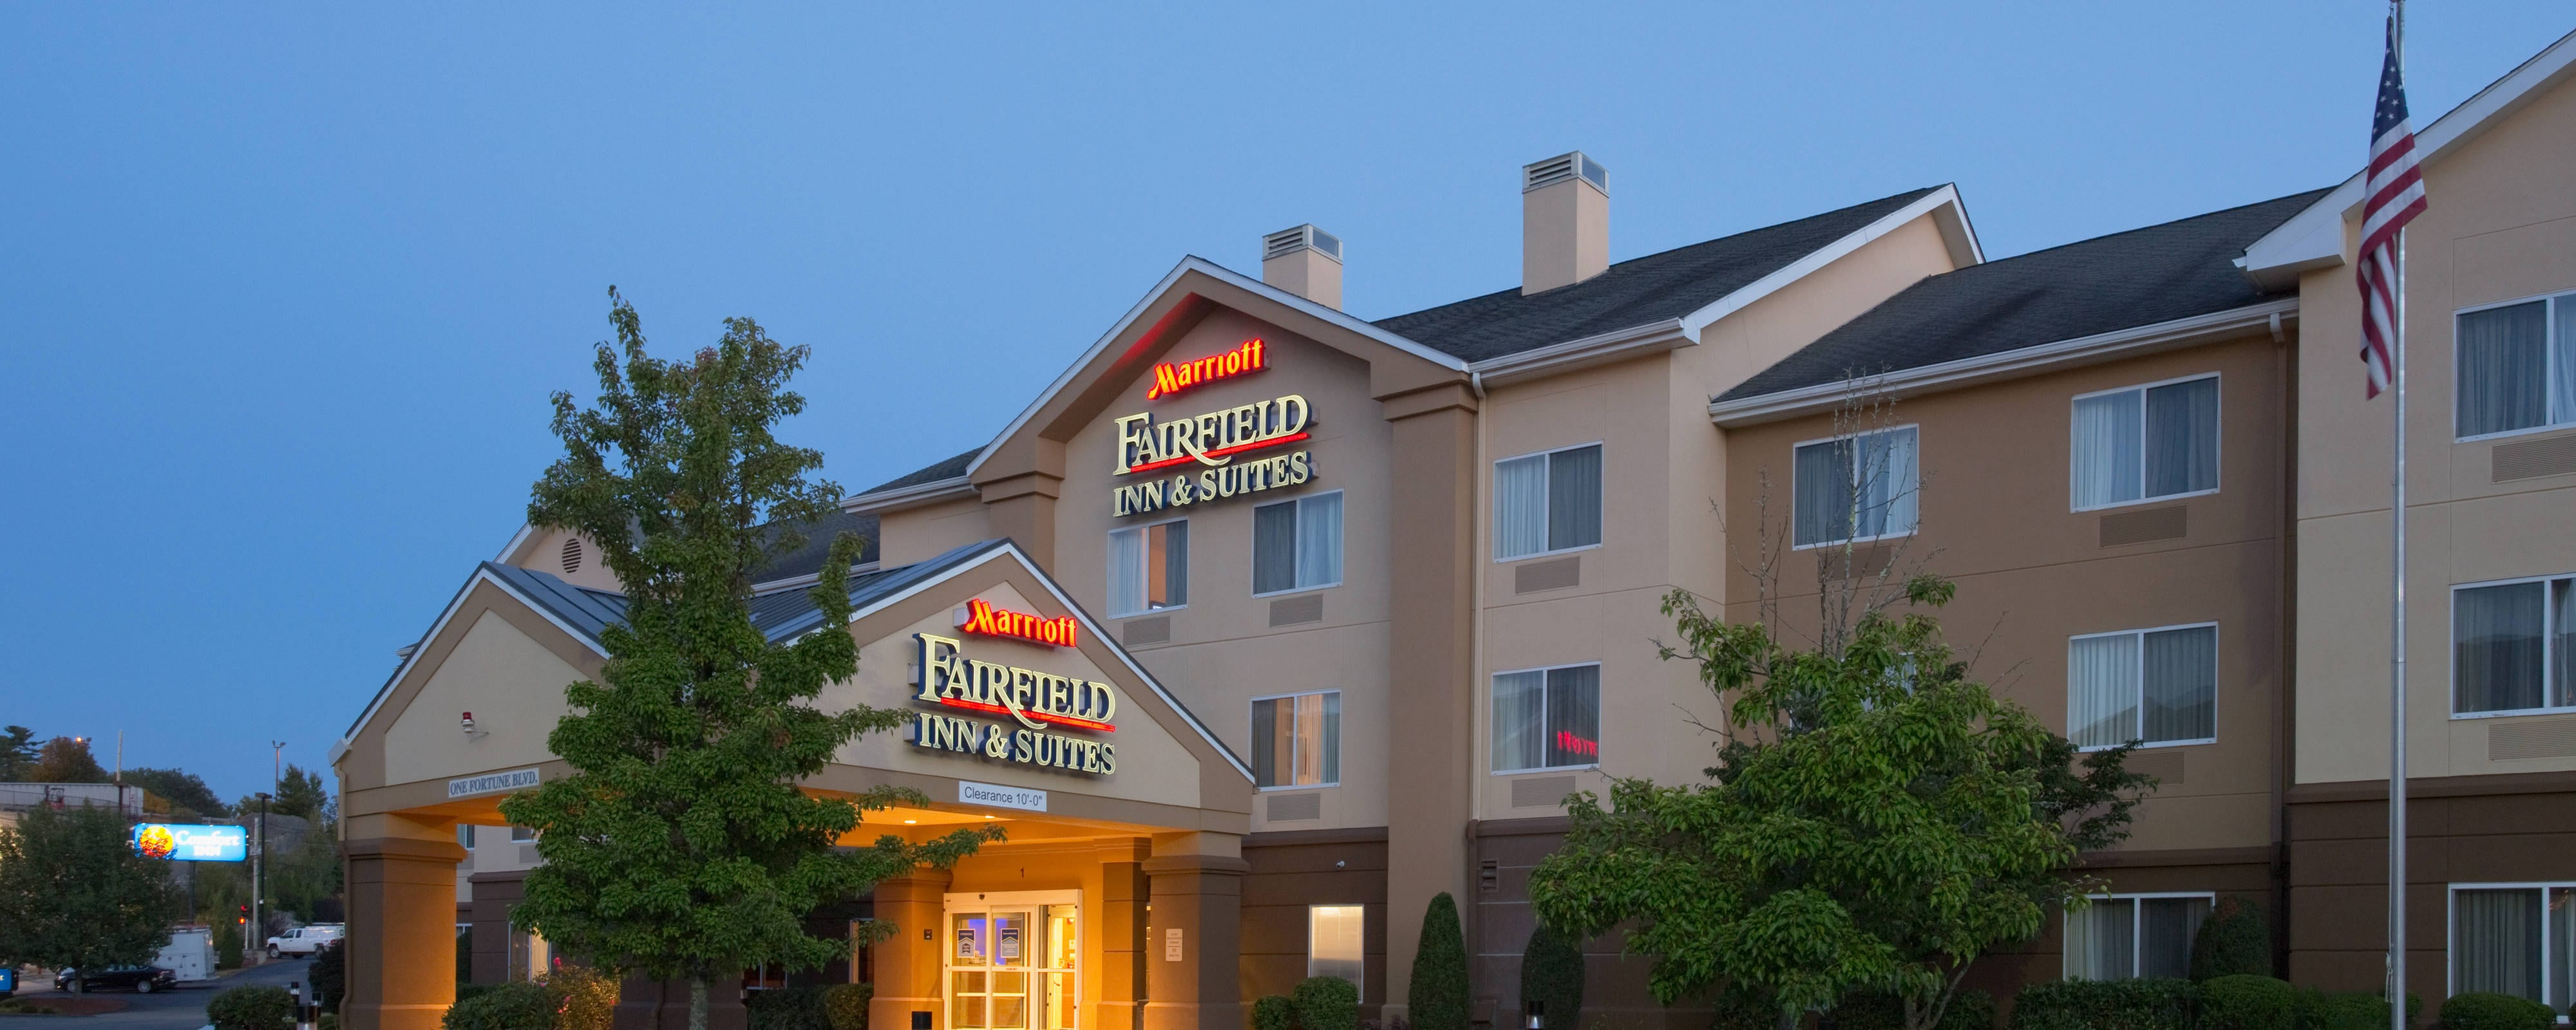 Ord Ma Hotels Fairfield Inn Suites Boston By Marriott A Convenient Family Friendly And Affordable Hotel Located Off Rte 495 Near I 95